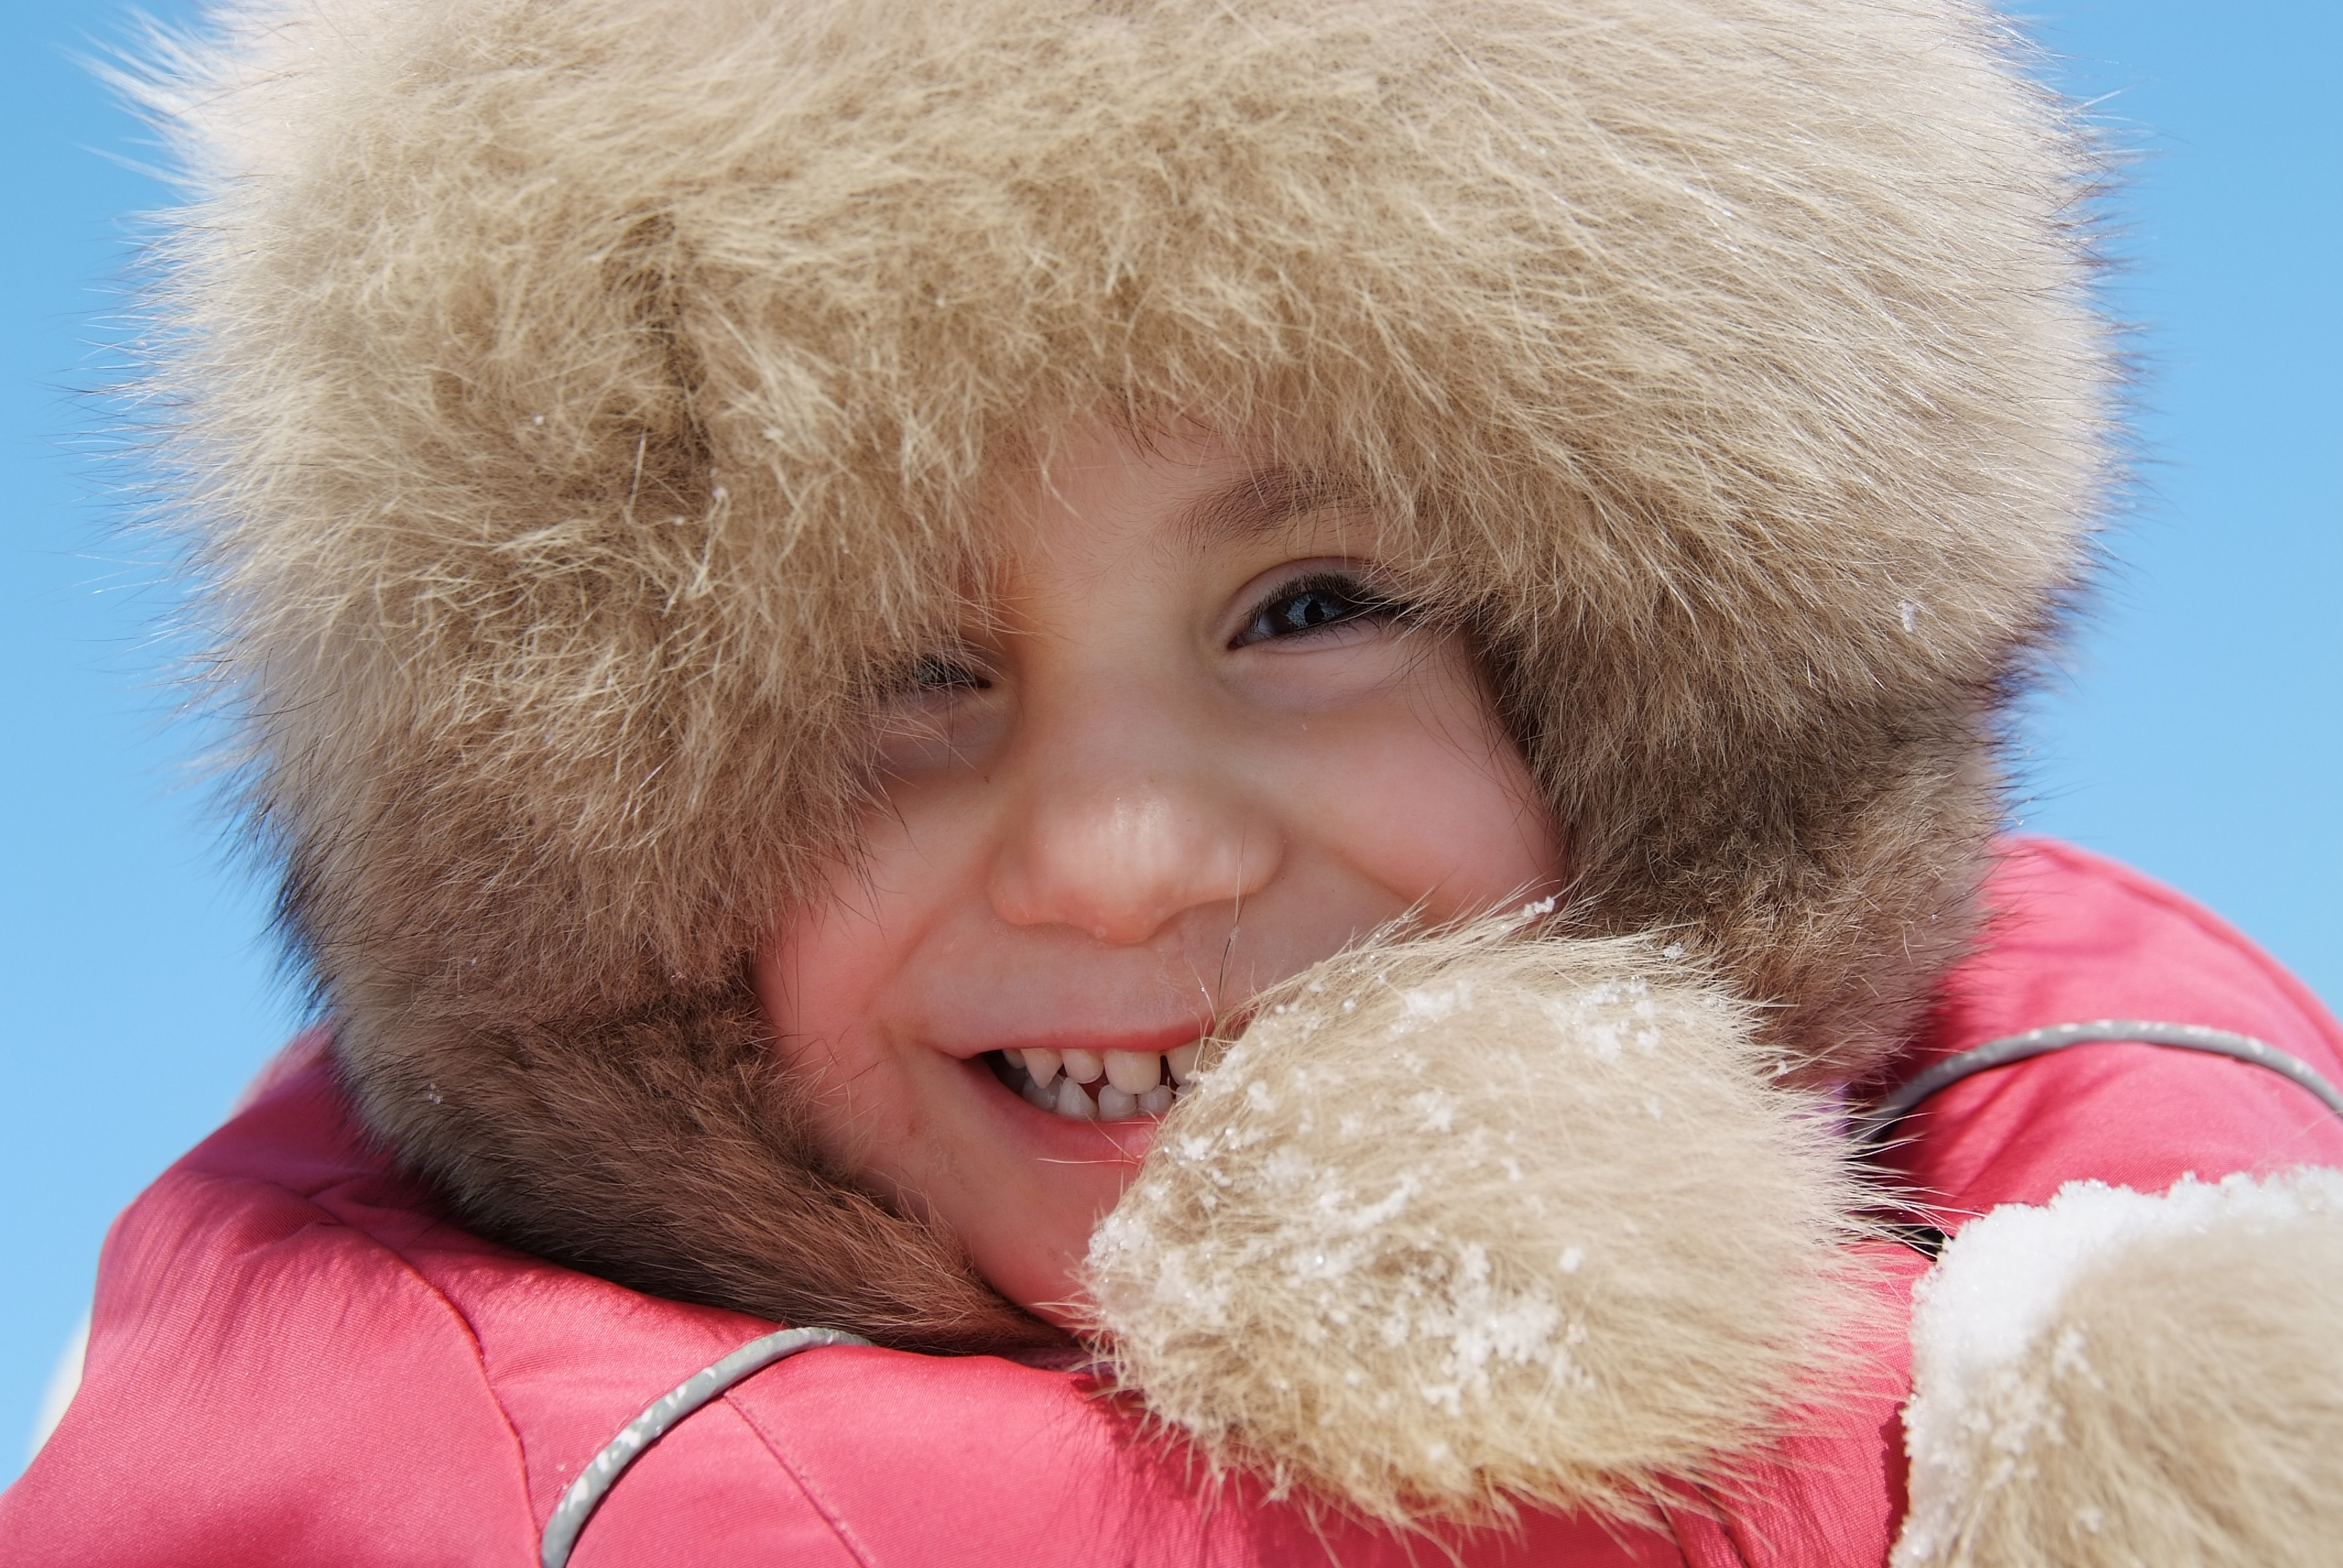 girl in pink and brown fur coat smiling